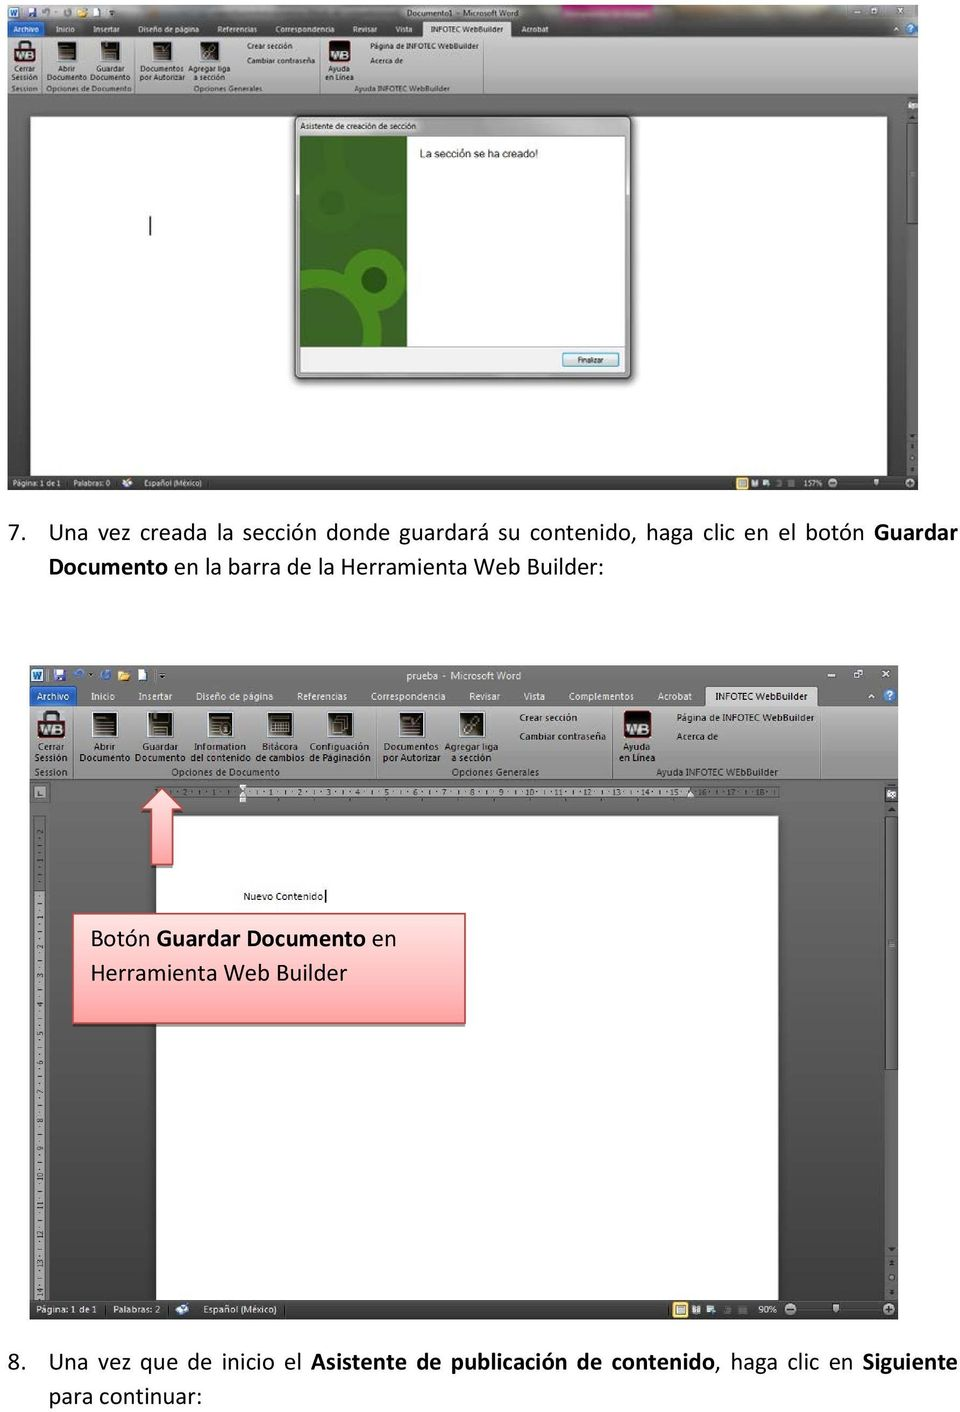 Guardar Documento en Herramienta Web Builder 8.